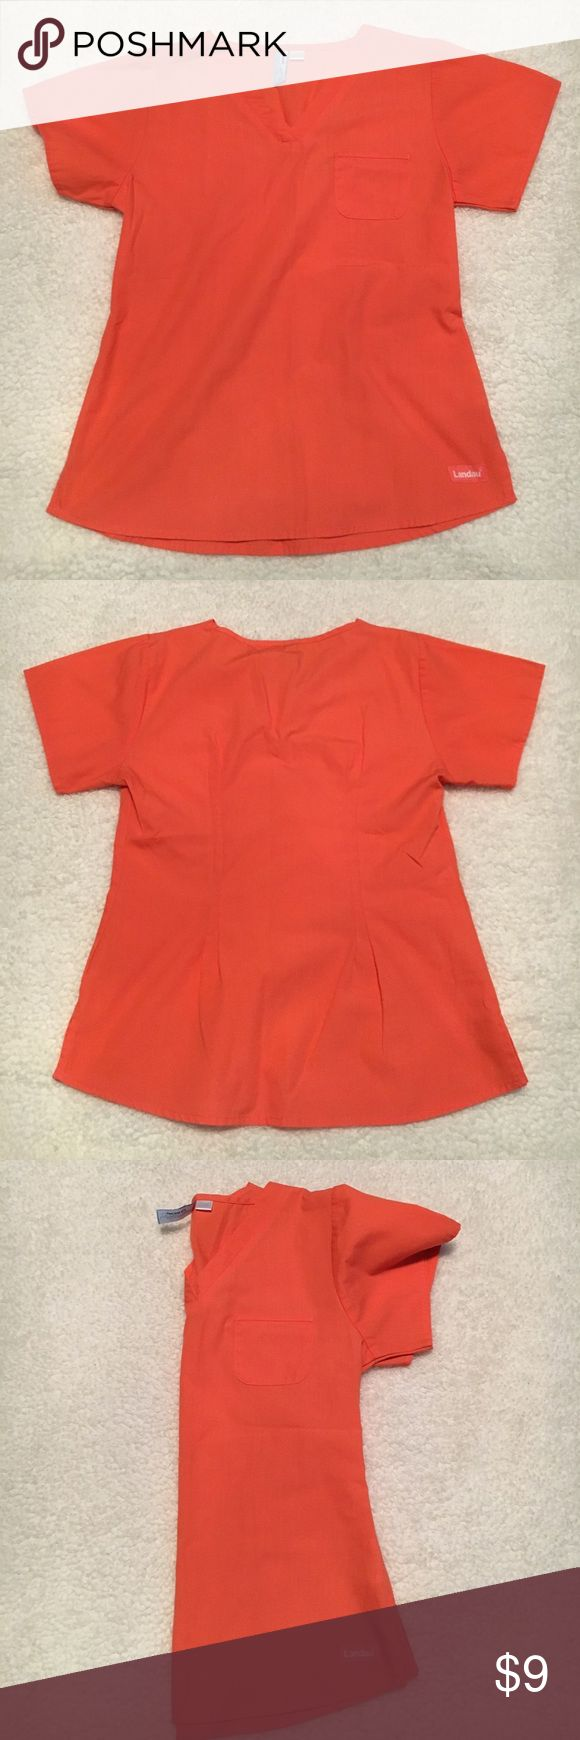 XS VIBRANT ORANGE Landau scrub top uniform Pre-loved and very well cared for extra Small Landau scrub top for women  Scrub top features a bright orange color, with flattering miniature pocket, and waist cut   Scrub top comes from a clean, smoke-free home Landau Tops